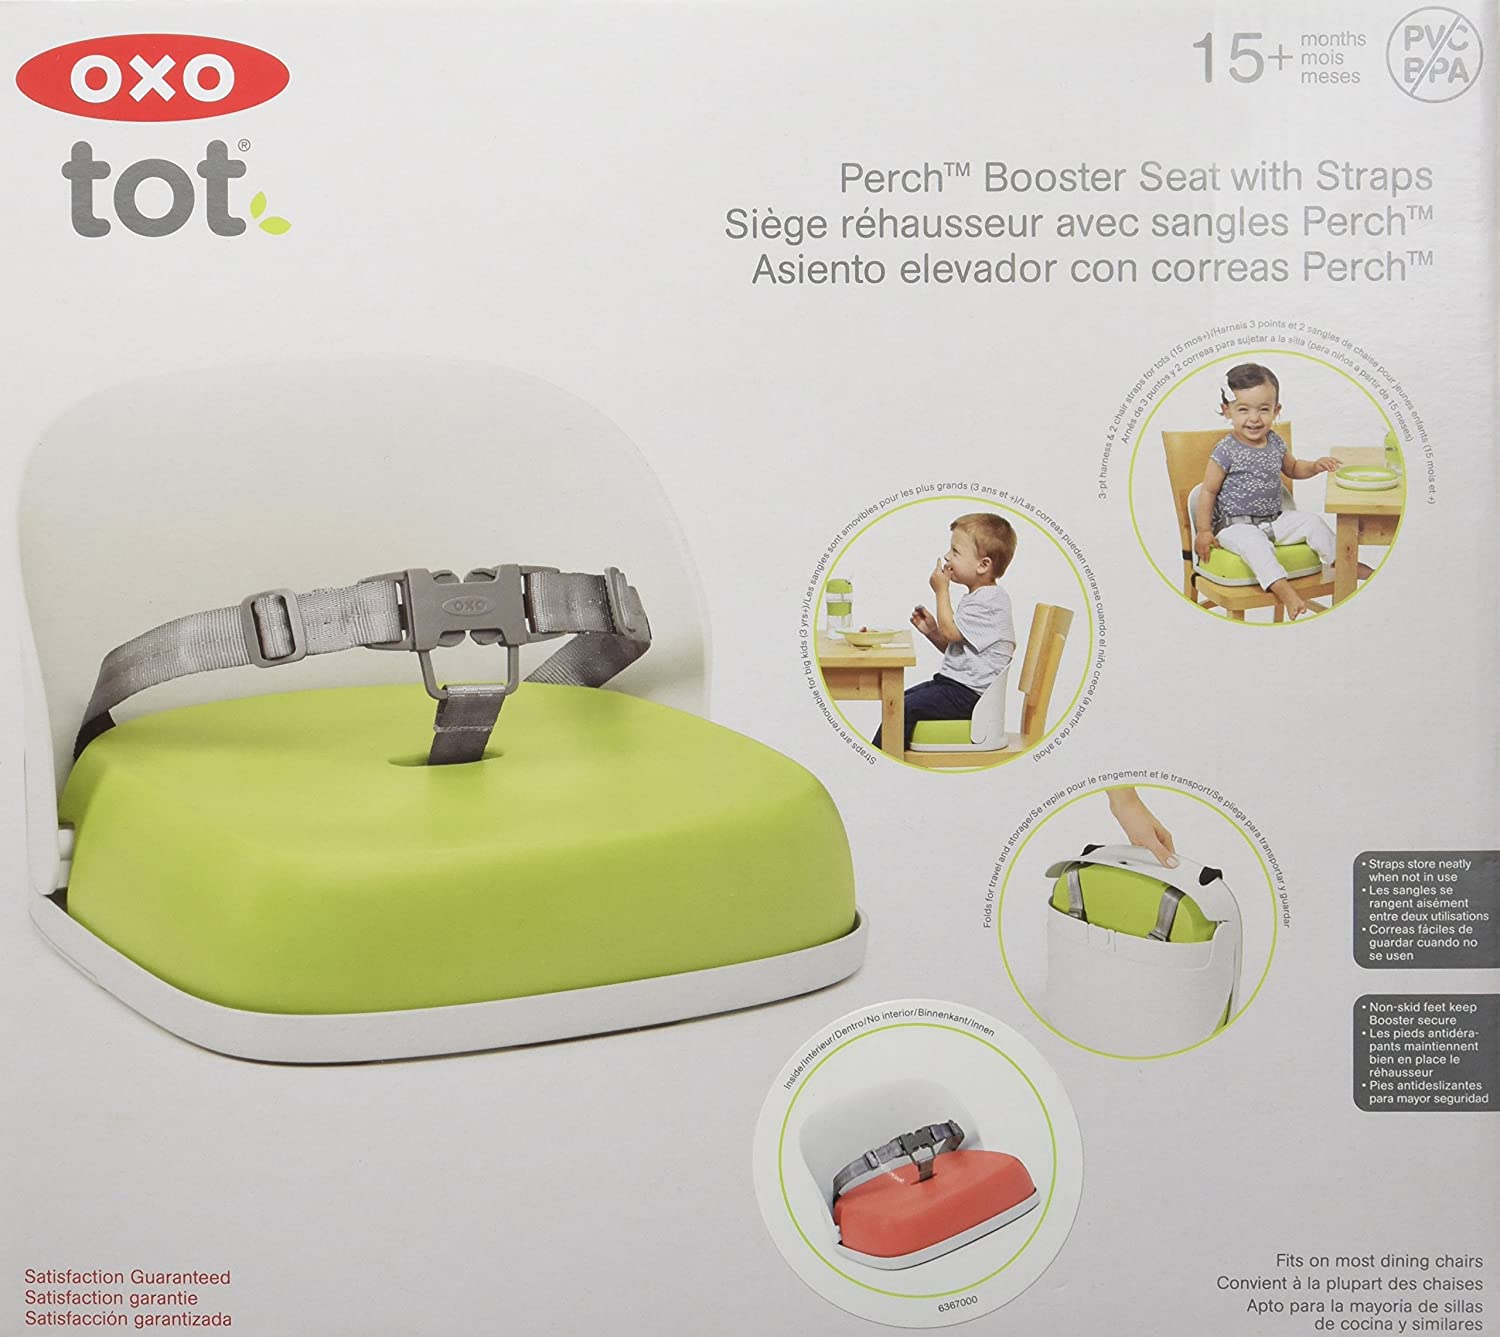 Orange OXO Tot Perch Booster Seat with Straps